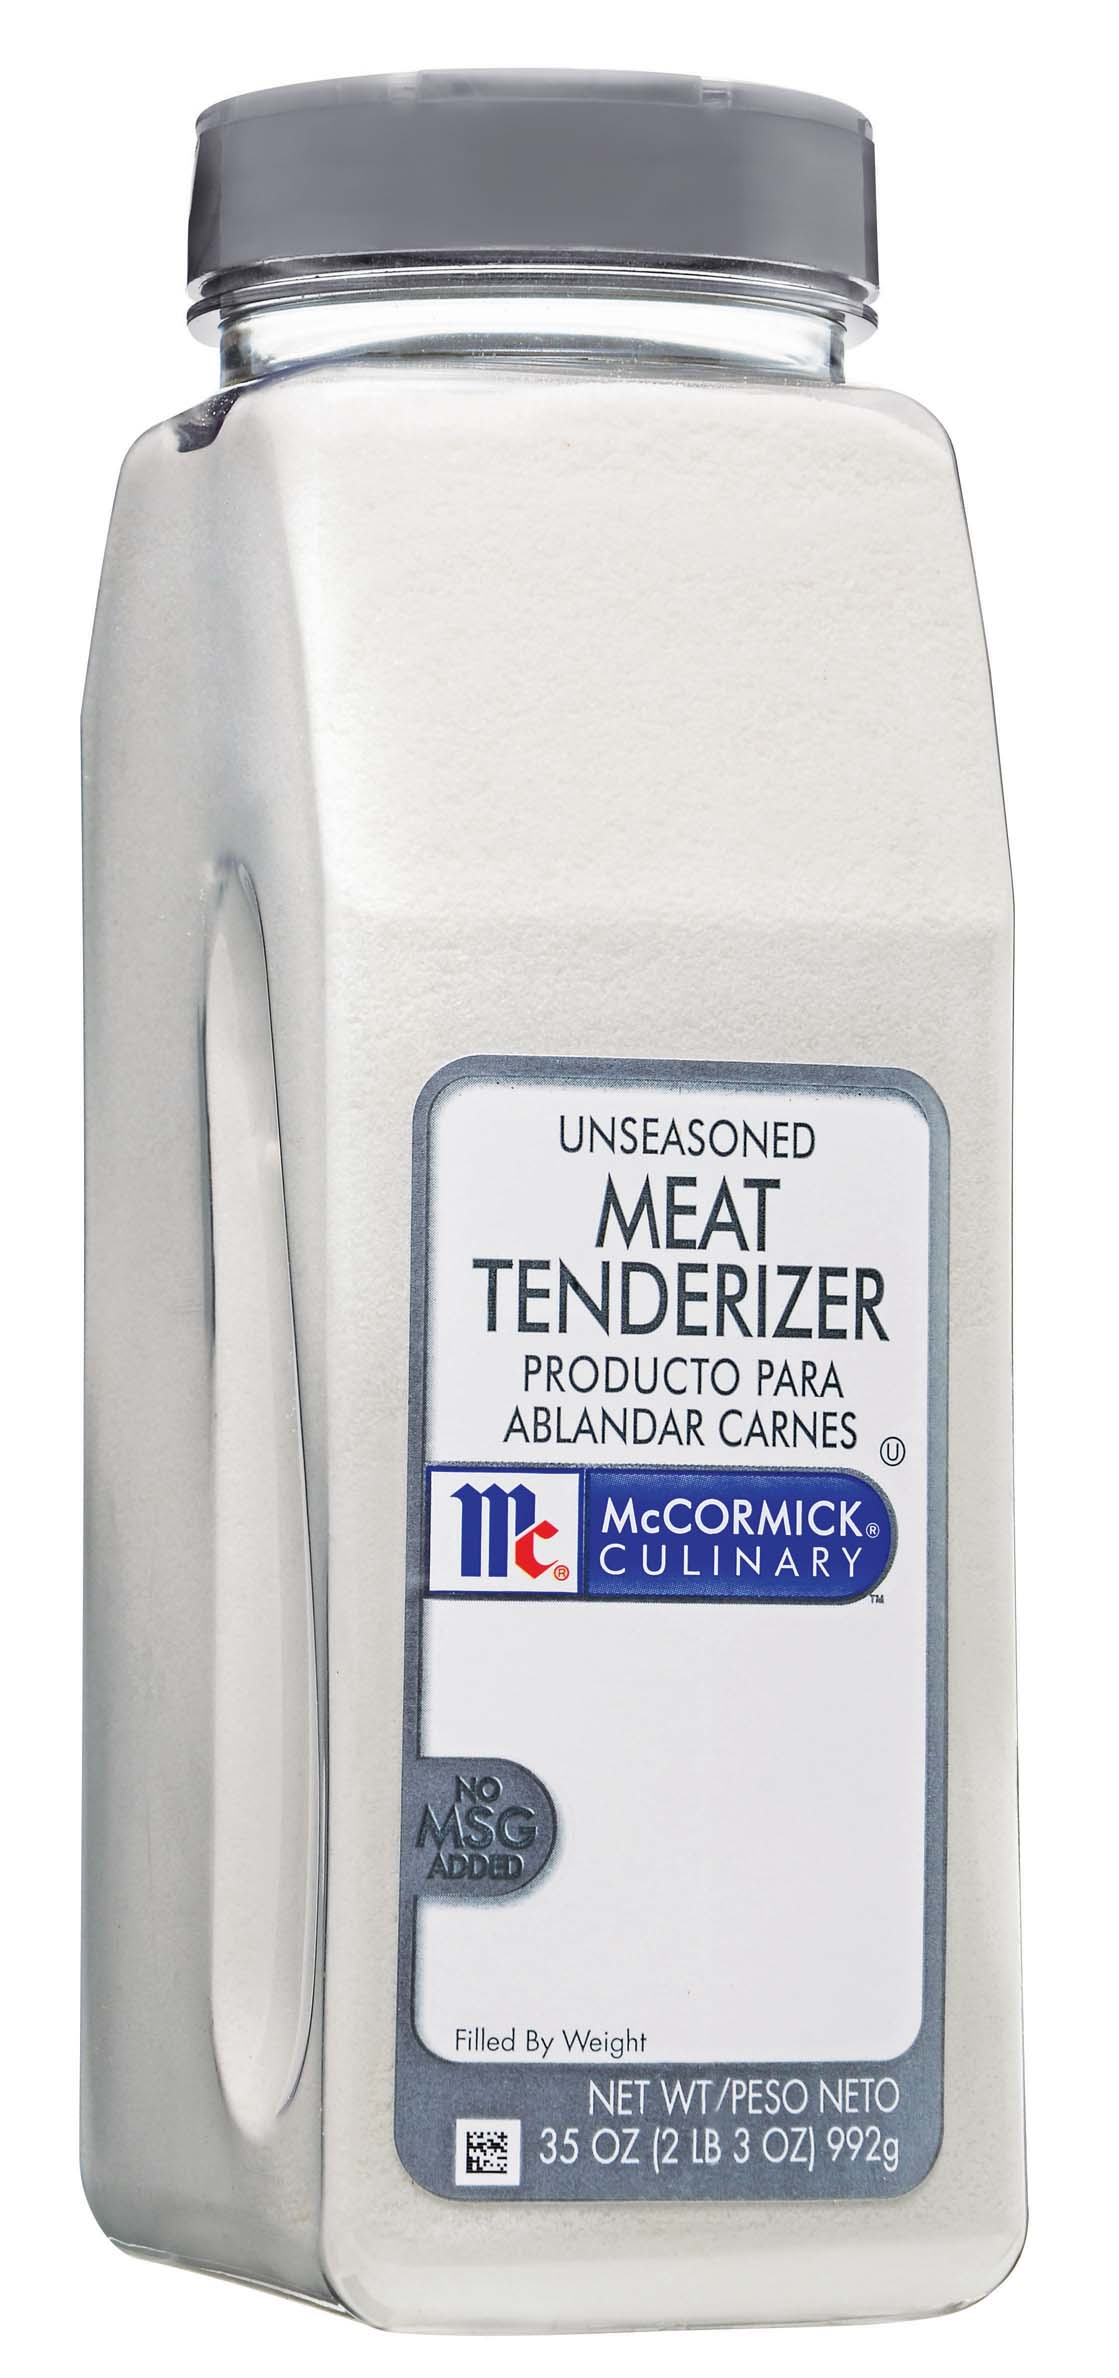 Meat Tenderizer image